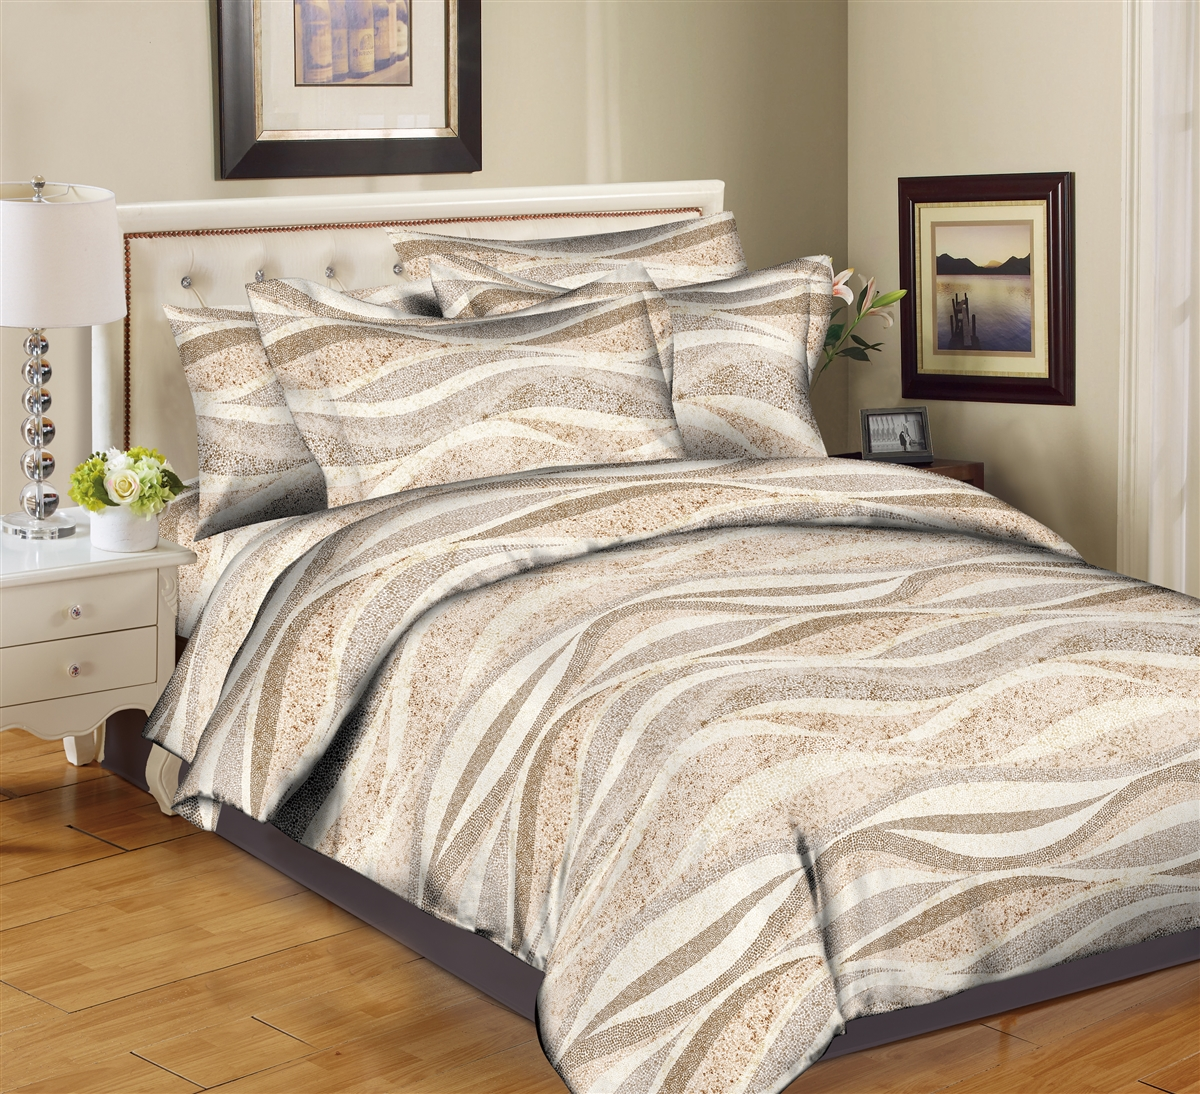 Better Bed Collection: Sandy Waves-Beige 8PC Twin Bedding Set